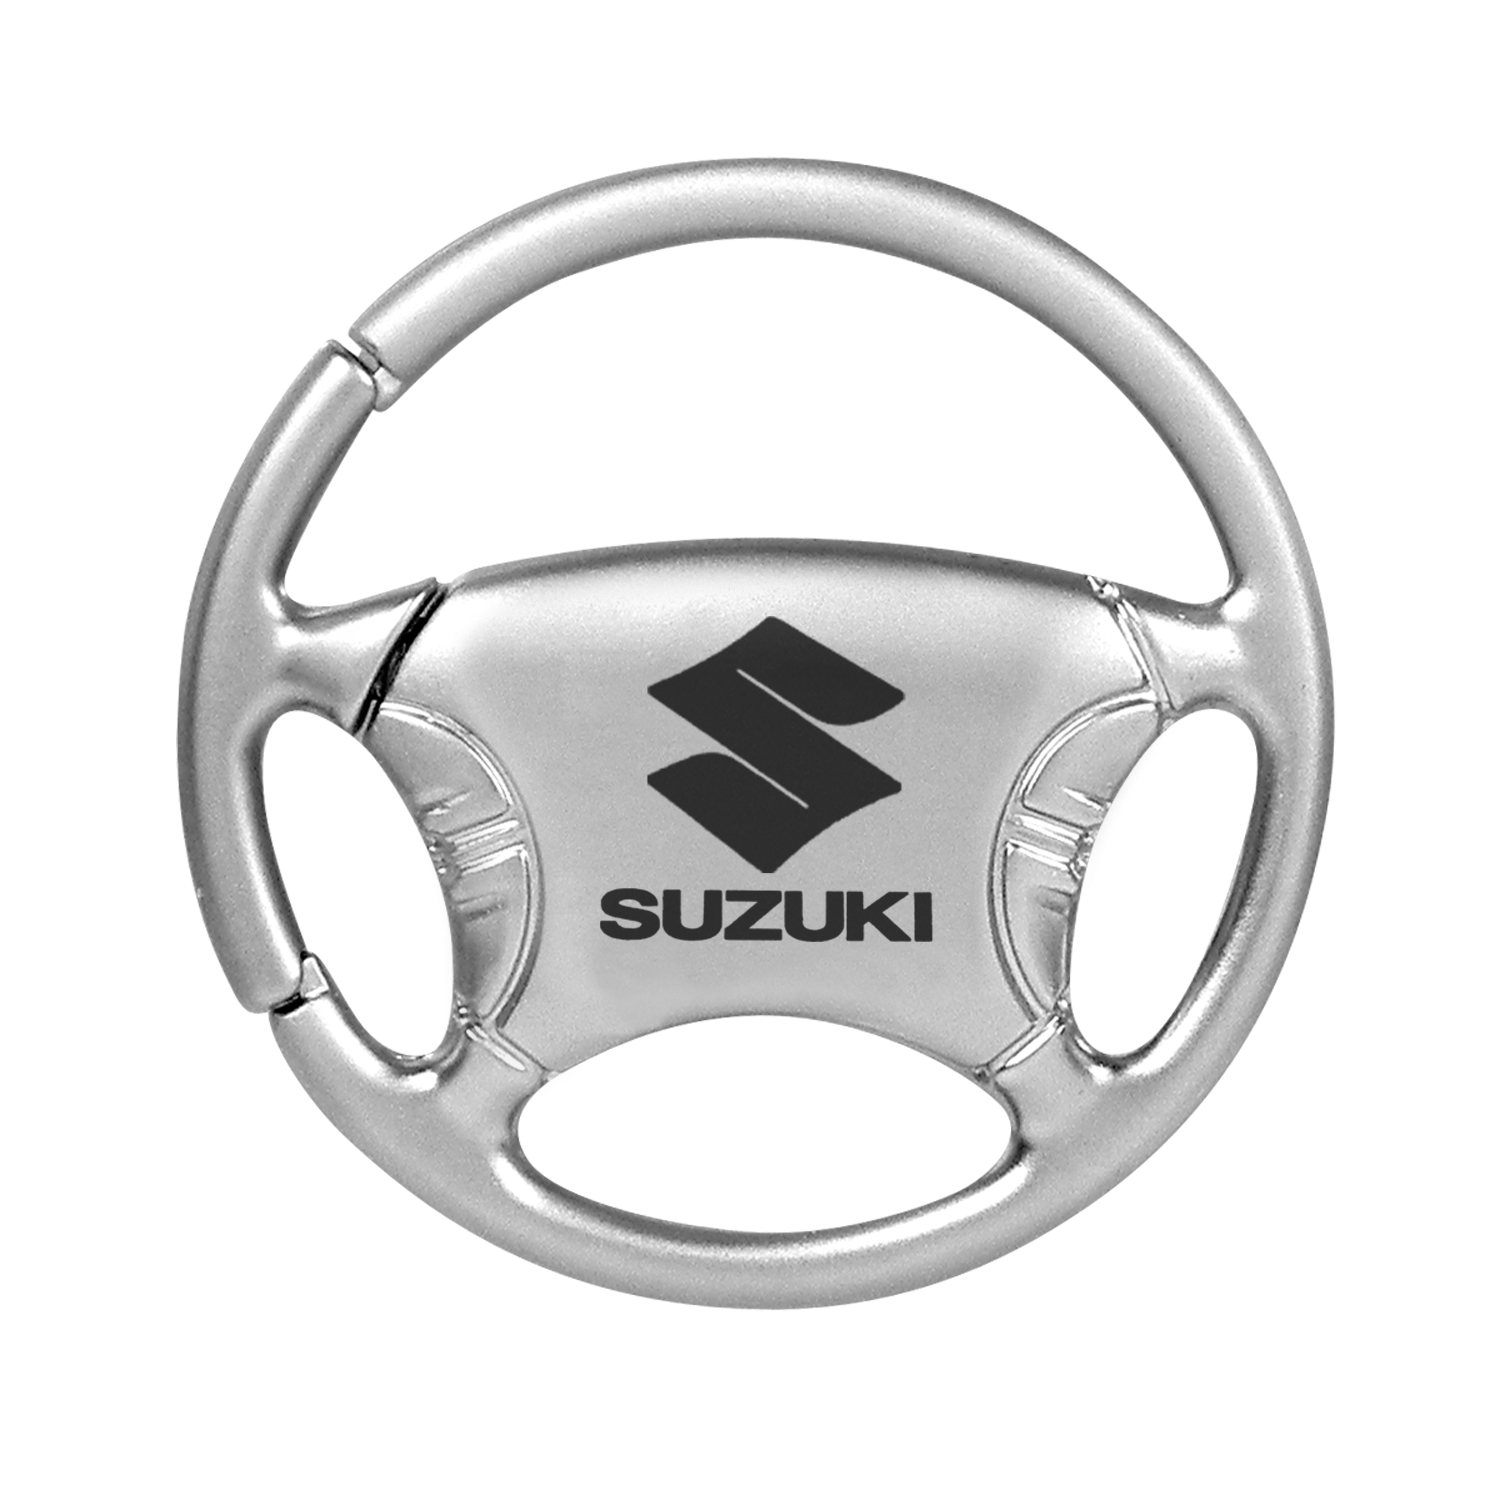 Suzuki Silver Steering Wheel Key Chain